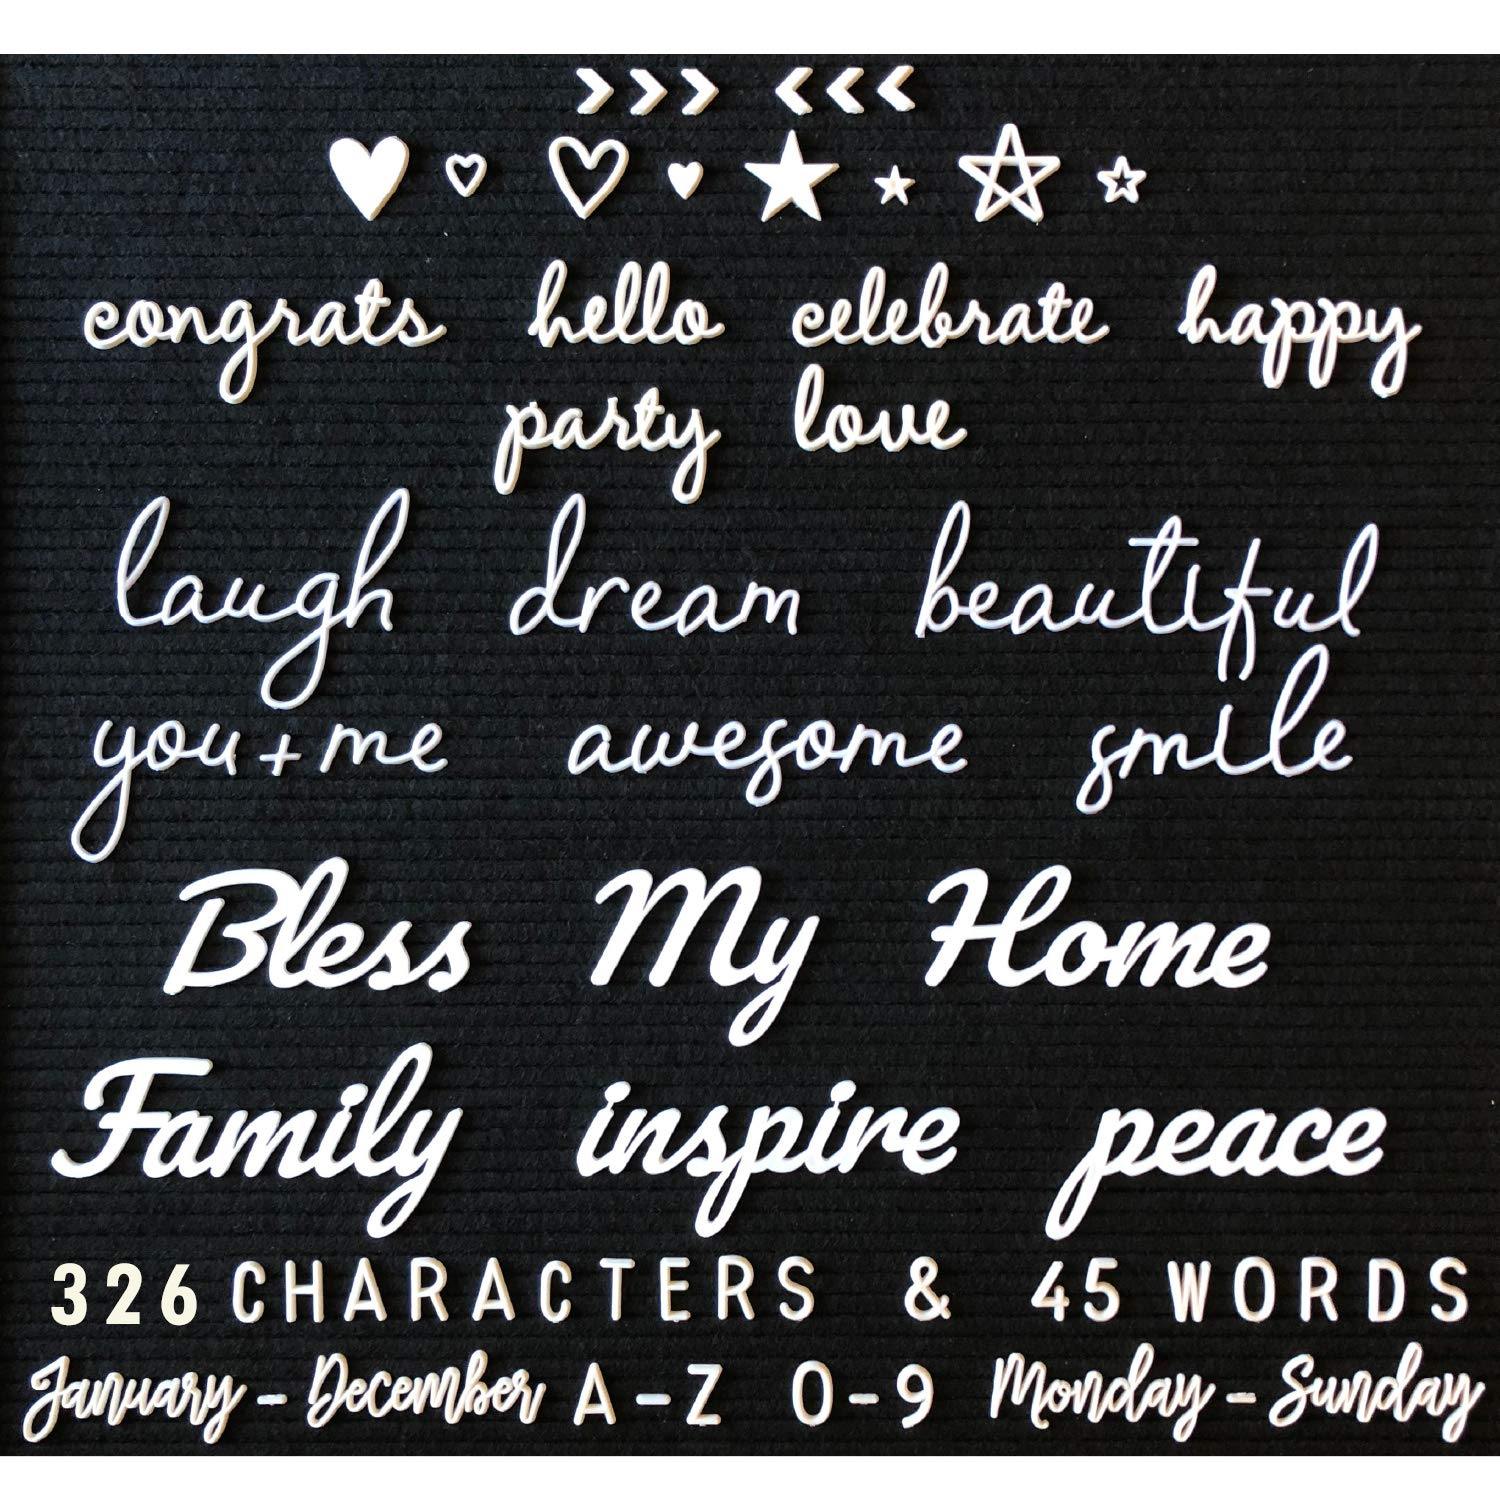 Letter Board Letters and Words for Changeable Boards and Felt Letterboards - 371 Piece All White Mega Bundle | 45 1-3 Inch Cursive Words | Characters, Letters | Plastic Letter Set, Words, Bag Only by Word Notions